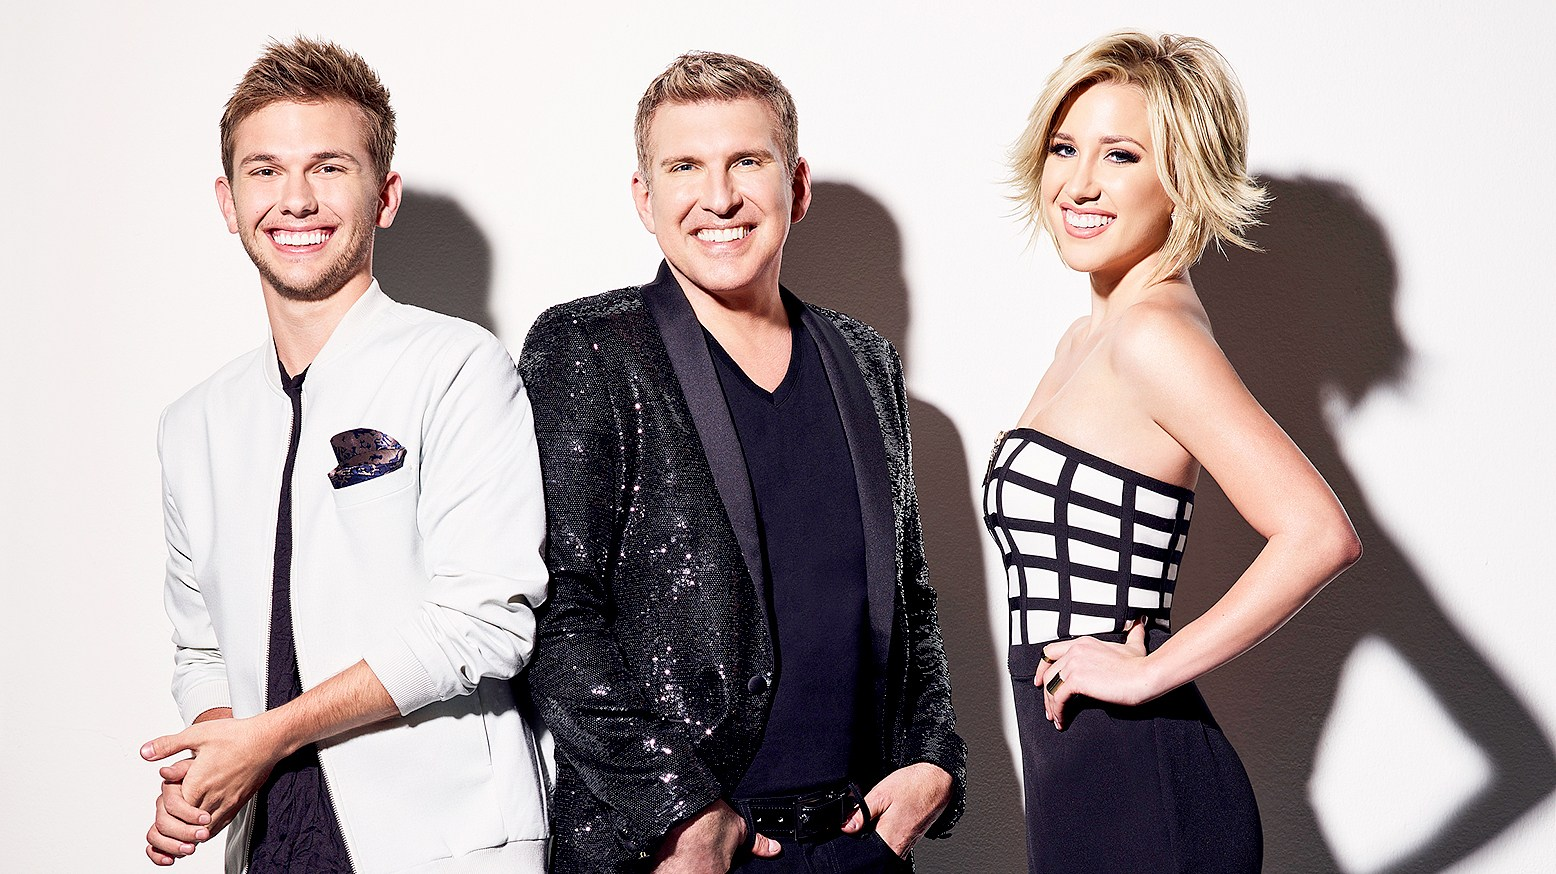 Chase Chrisley, Todd Chrisley, and Savannah Chrisley